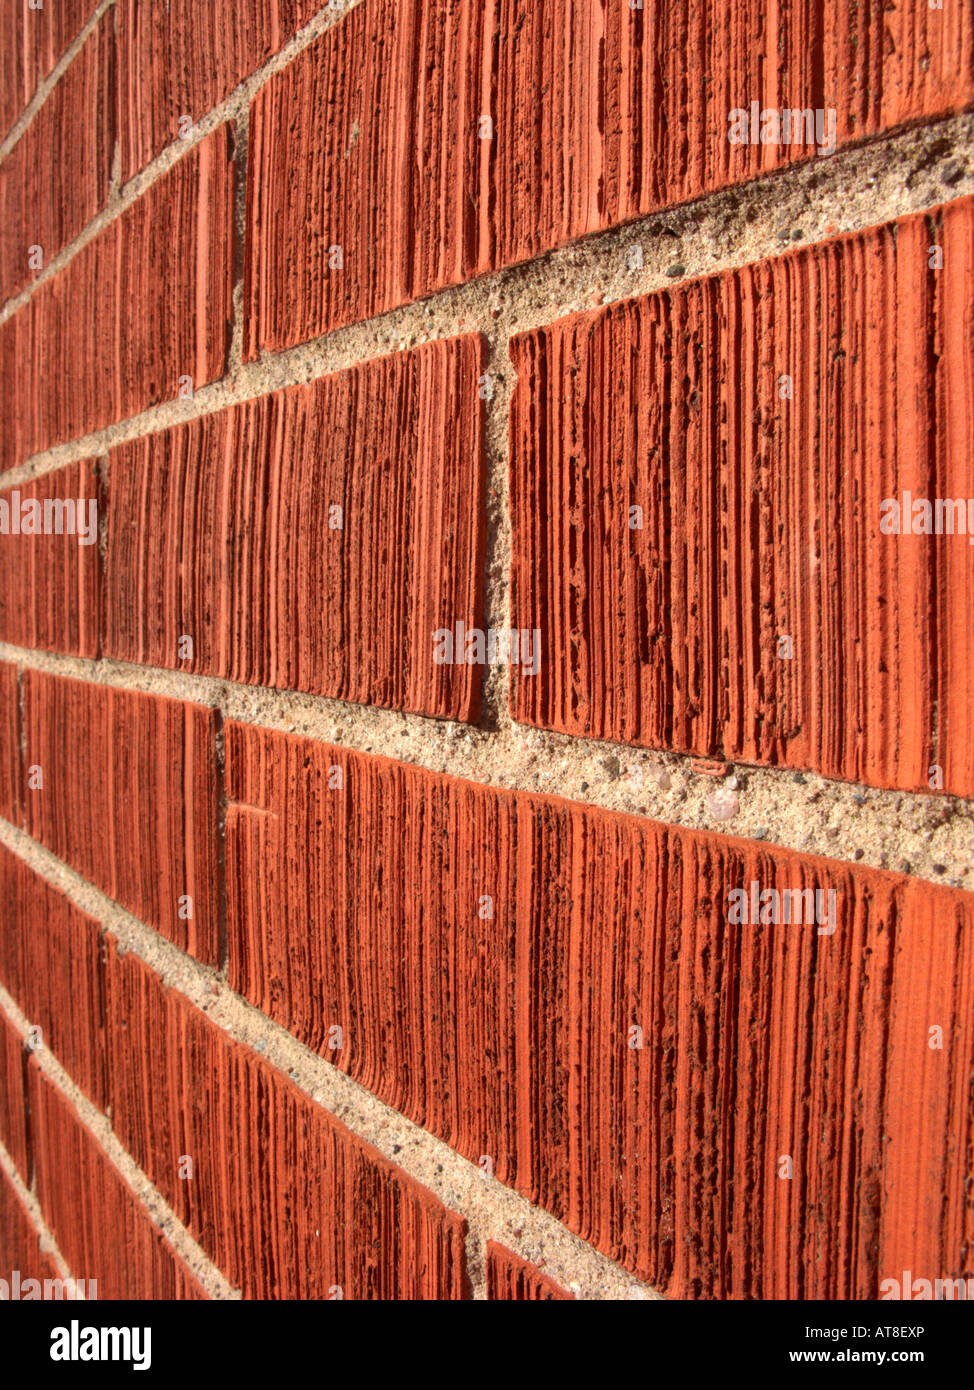 row of red pointed bricks on the gable wall of a house running off into the distance - Stock Image